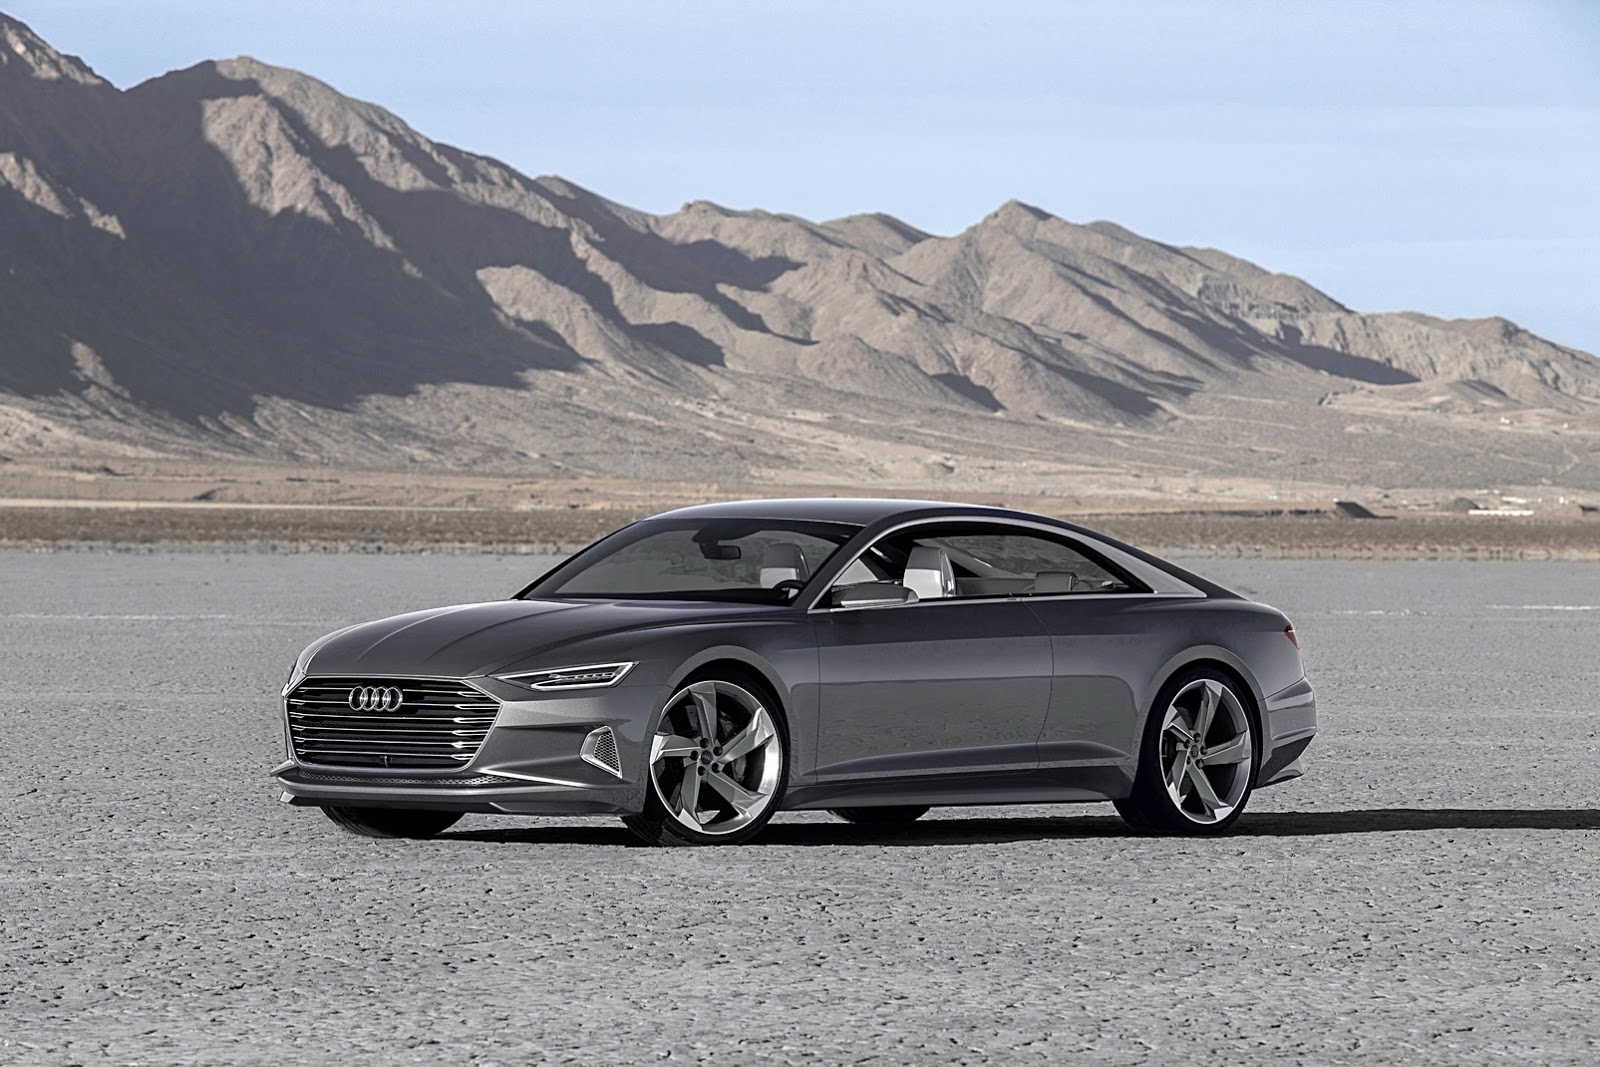 New Audi A8 Coming In 2017, Will Get Autonomous Driving Features